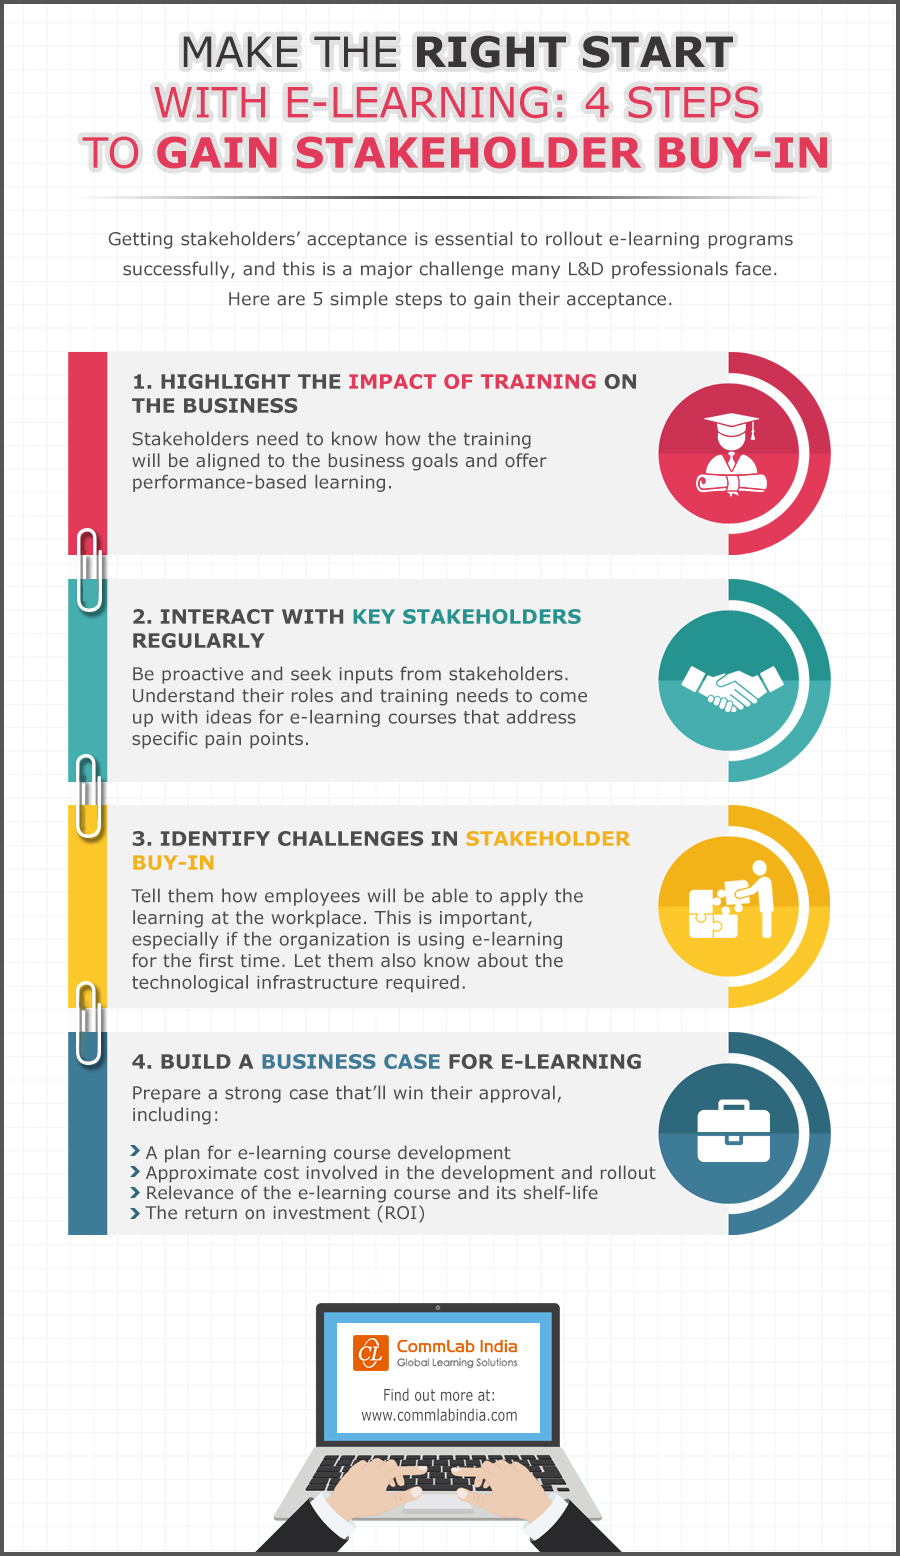 Make the Right Start with E-learning: 4 Steps to Gain Stakeholder Buy-in [Infographic]